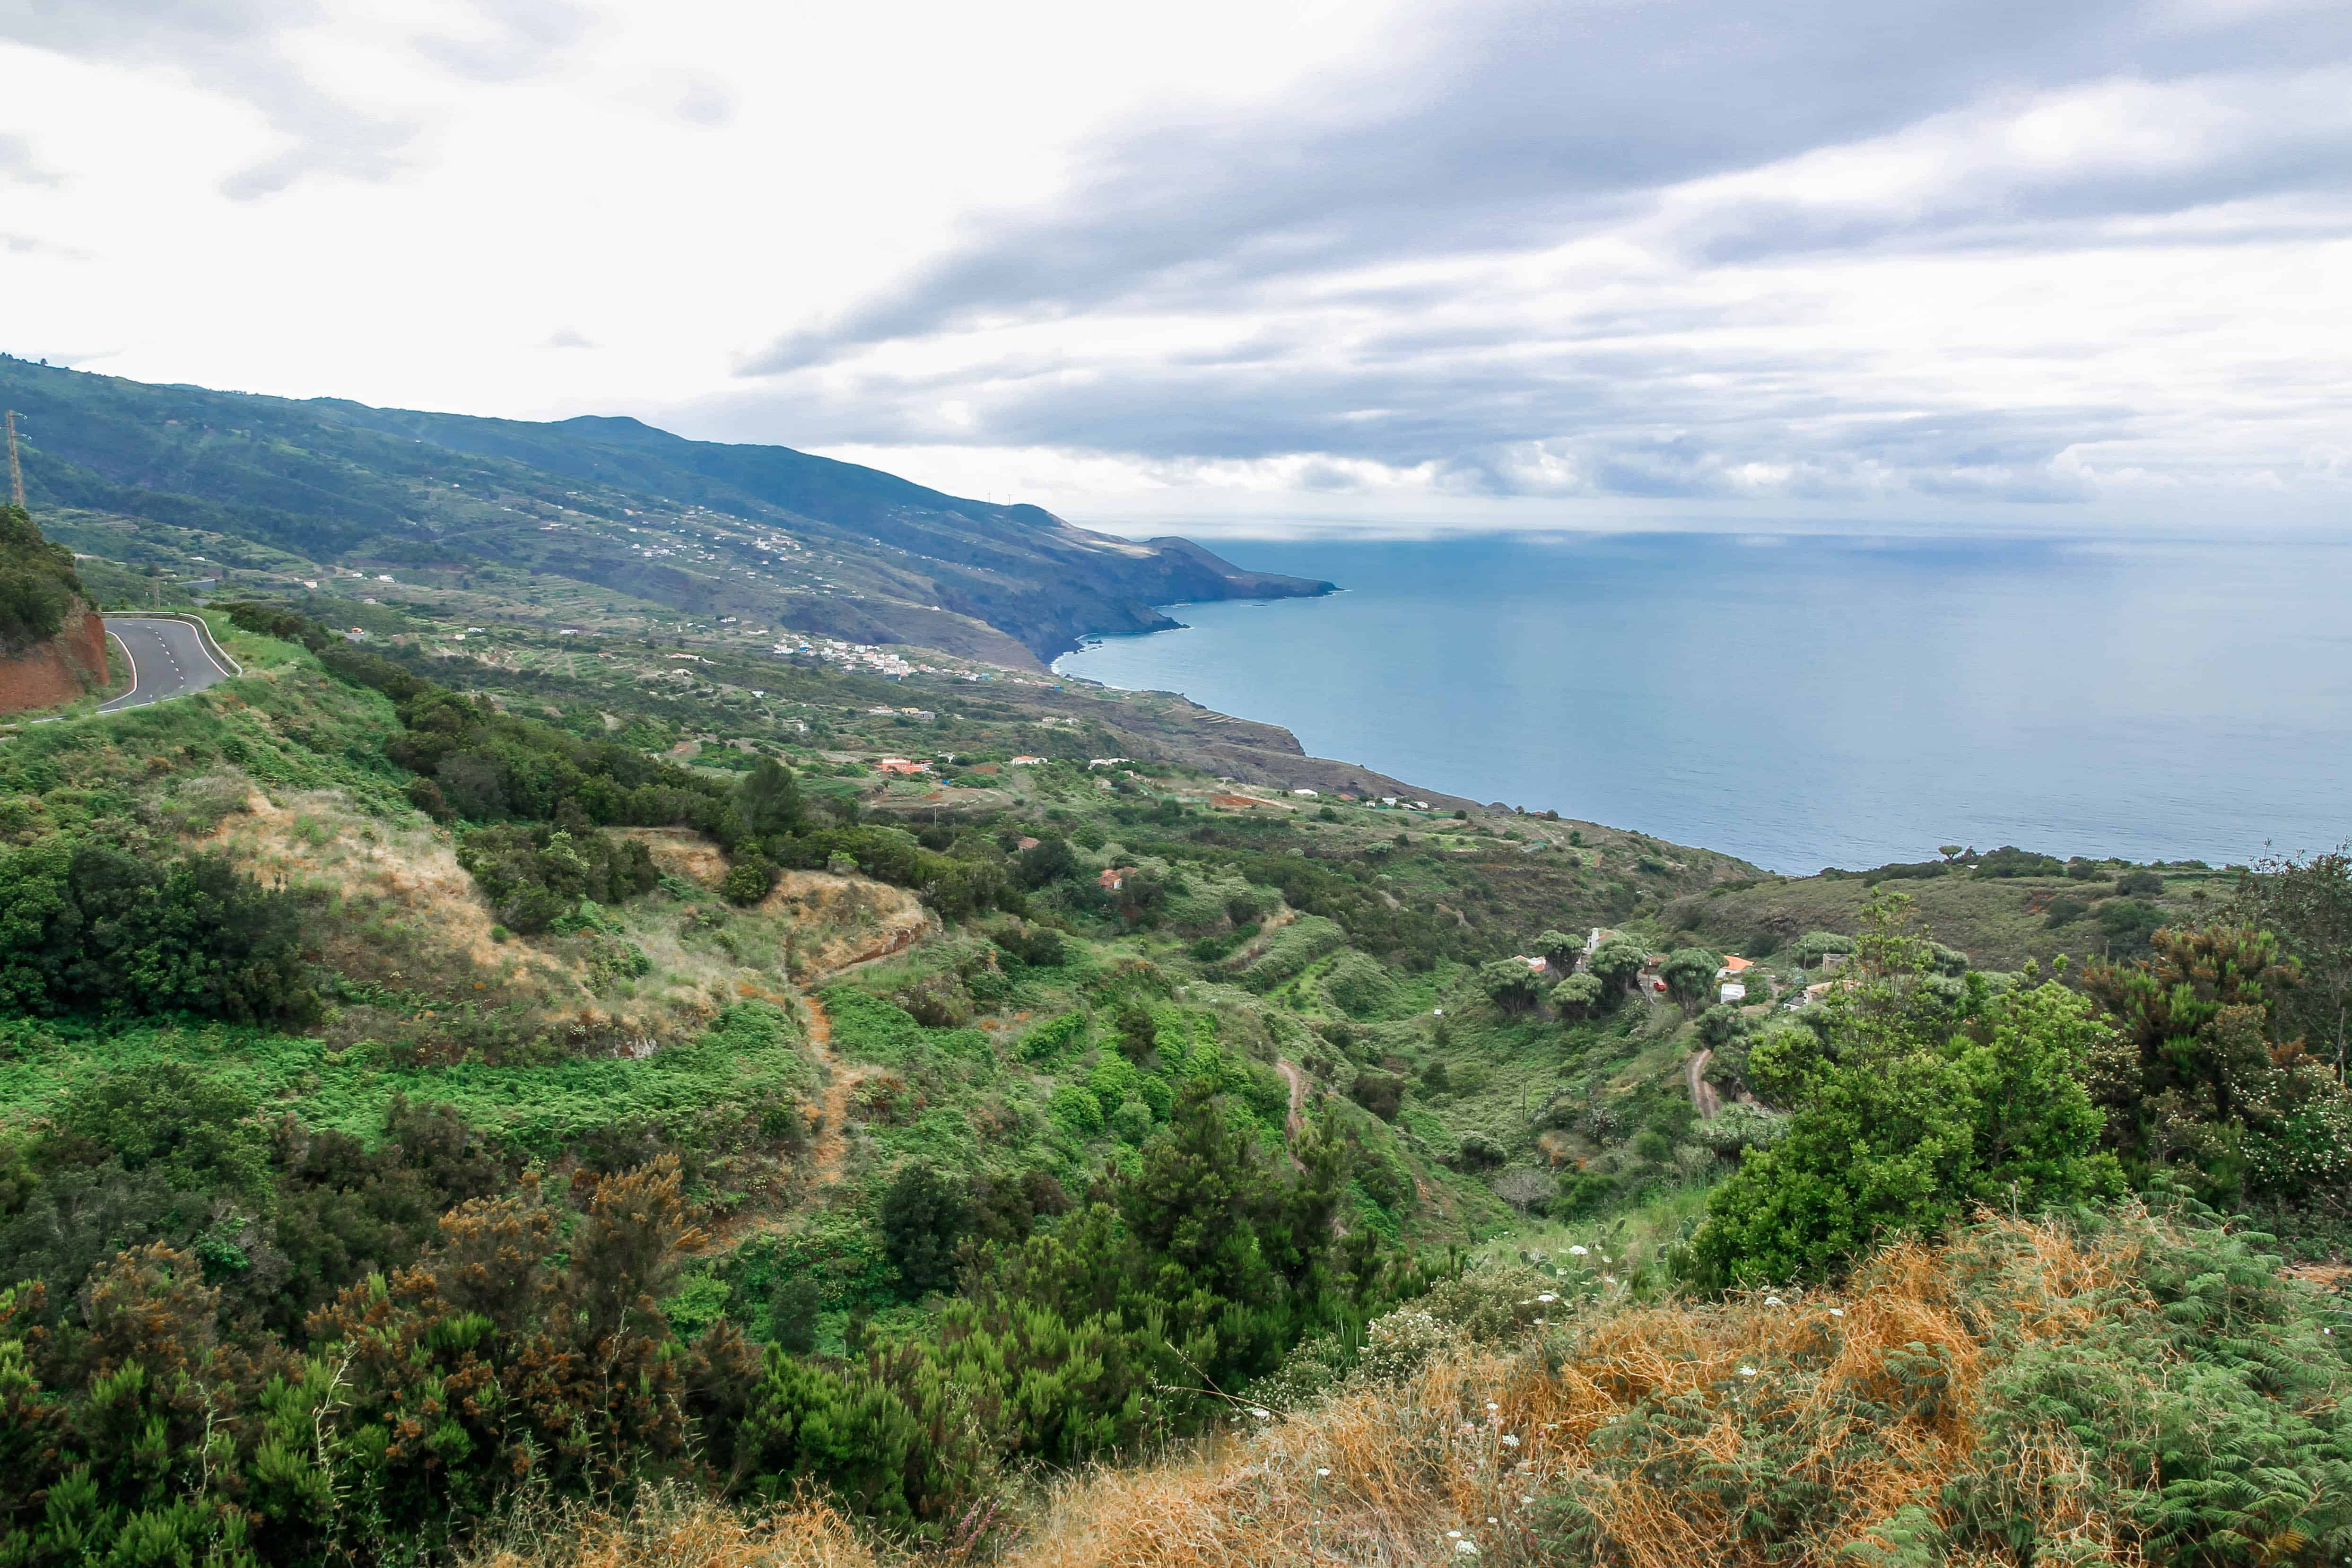 Green North of La Palma. Ocean view. La Palma - The Hidden Gem of the Canary Islands, article by Kiss My Backpack at https://www.kissmybackpack.com/